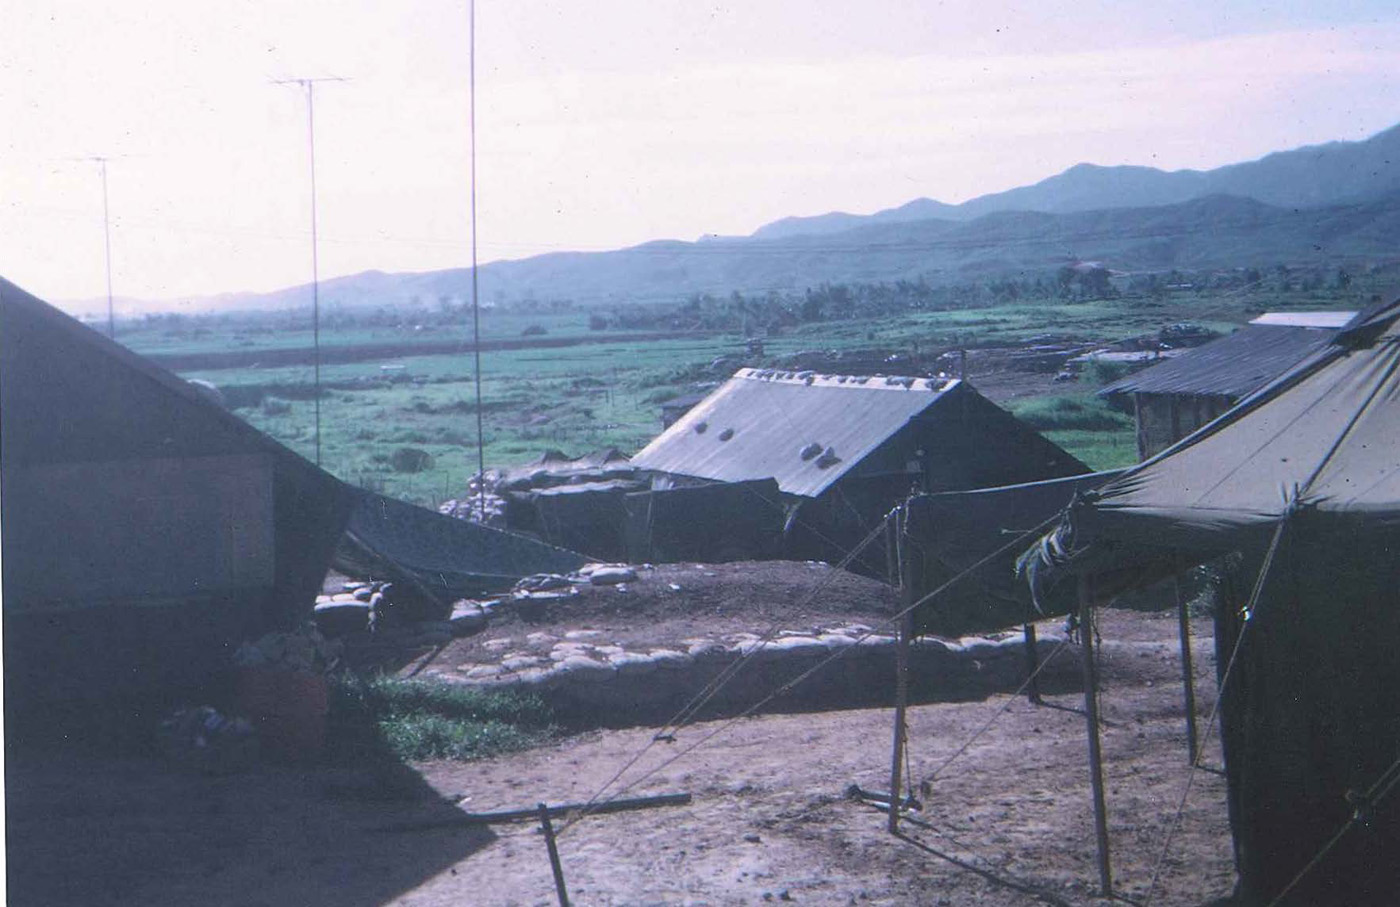 View of An Hoa Basin and mountains east of base camp – photo taken in September 1968